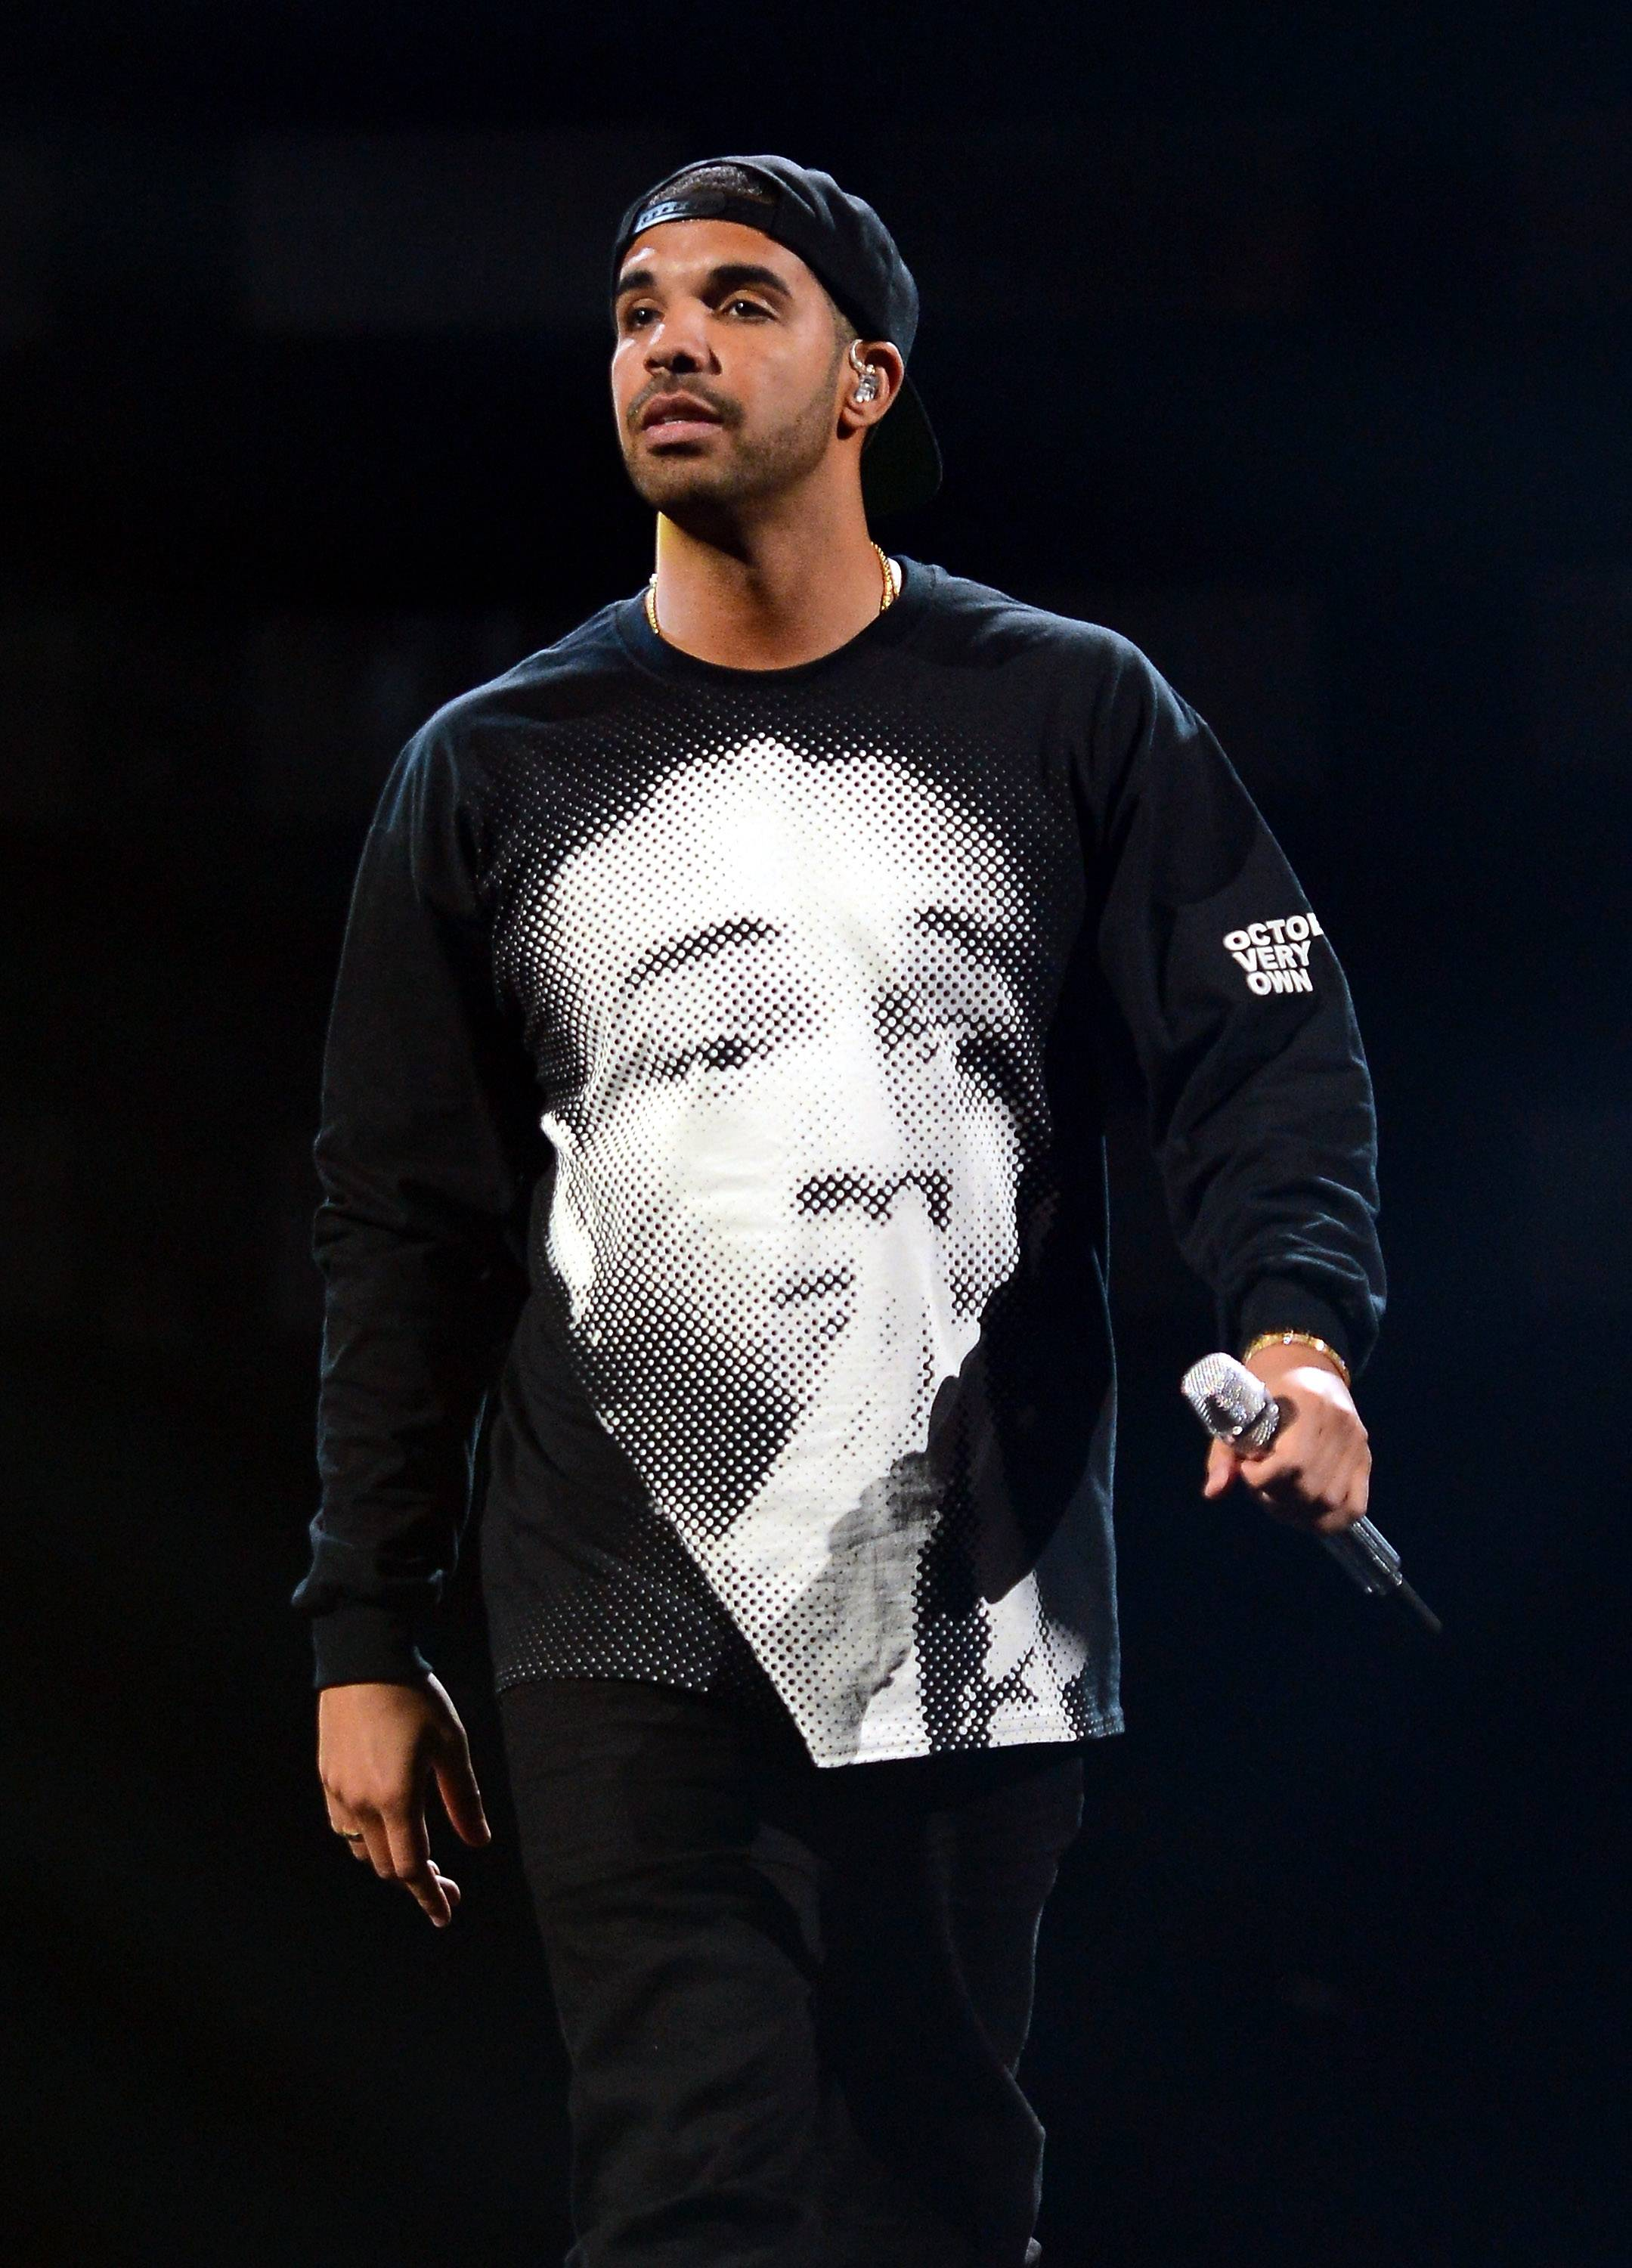 """Drake vs.Rolling Stone - Drake had his heart set on celebrating the five year anniversary of his debut mixtape, So Far So Gone, with a February cover on Rolling Stone magazine. But when his cover was replaced last-minute by one in memoriam to actor Phillip Seymour Hoffman, and """"off the record"""" quotes from Drizzy's interview were leaked, the """"Started From the Bottom"""" rapperswore off interviewsaltogether. He took to the common virtual diary better known as Twitter to vent his frustrations, notinghis """"disgust"""" with the magazine. But after negative response to his mini-meltdown, Drake took tohis OVO blogblog to apologize.(Photo: Ethan Miller/Getty Images for Clear Channel)"""